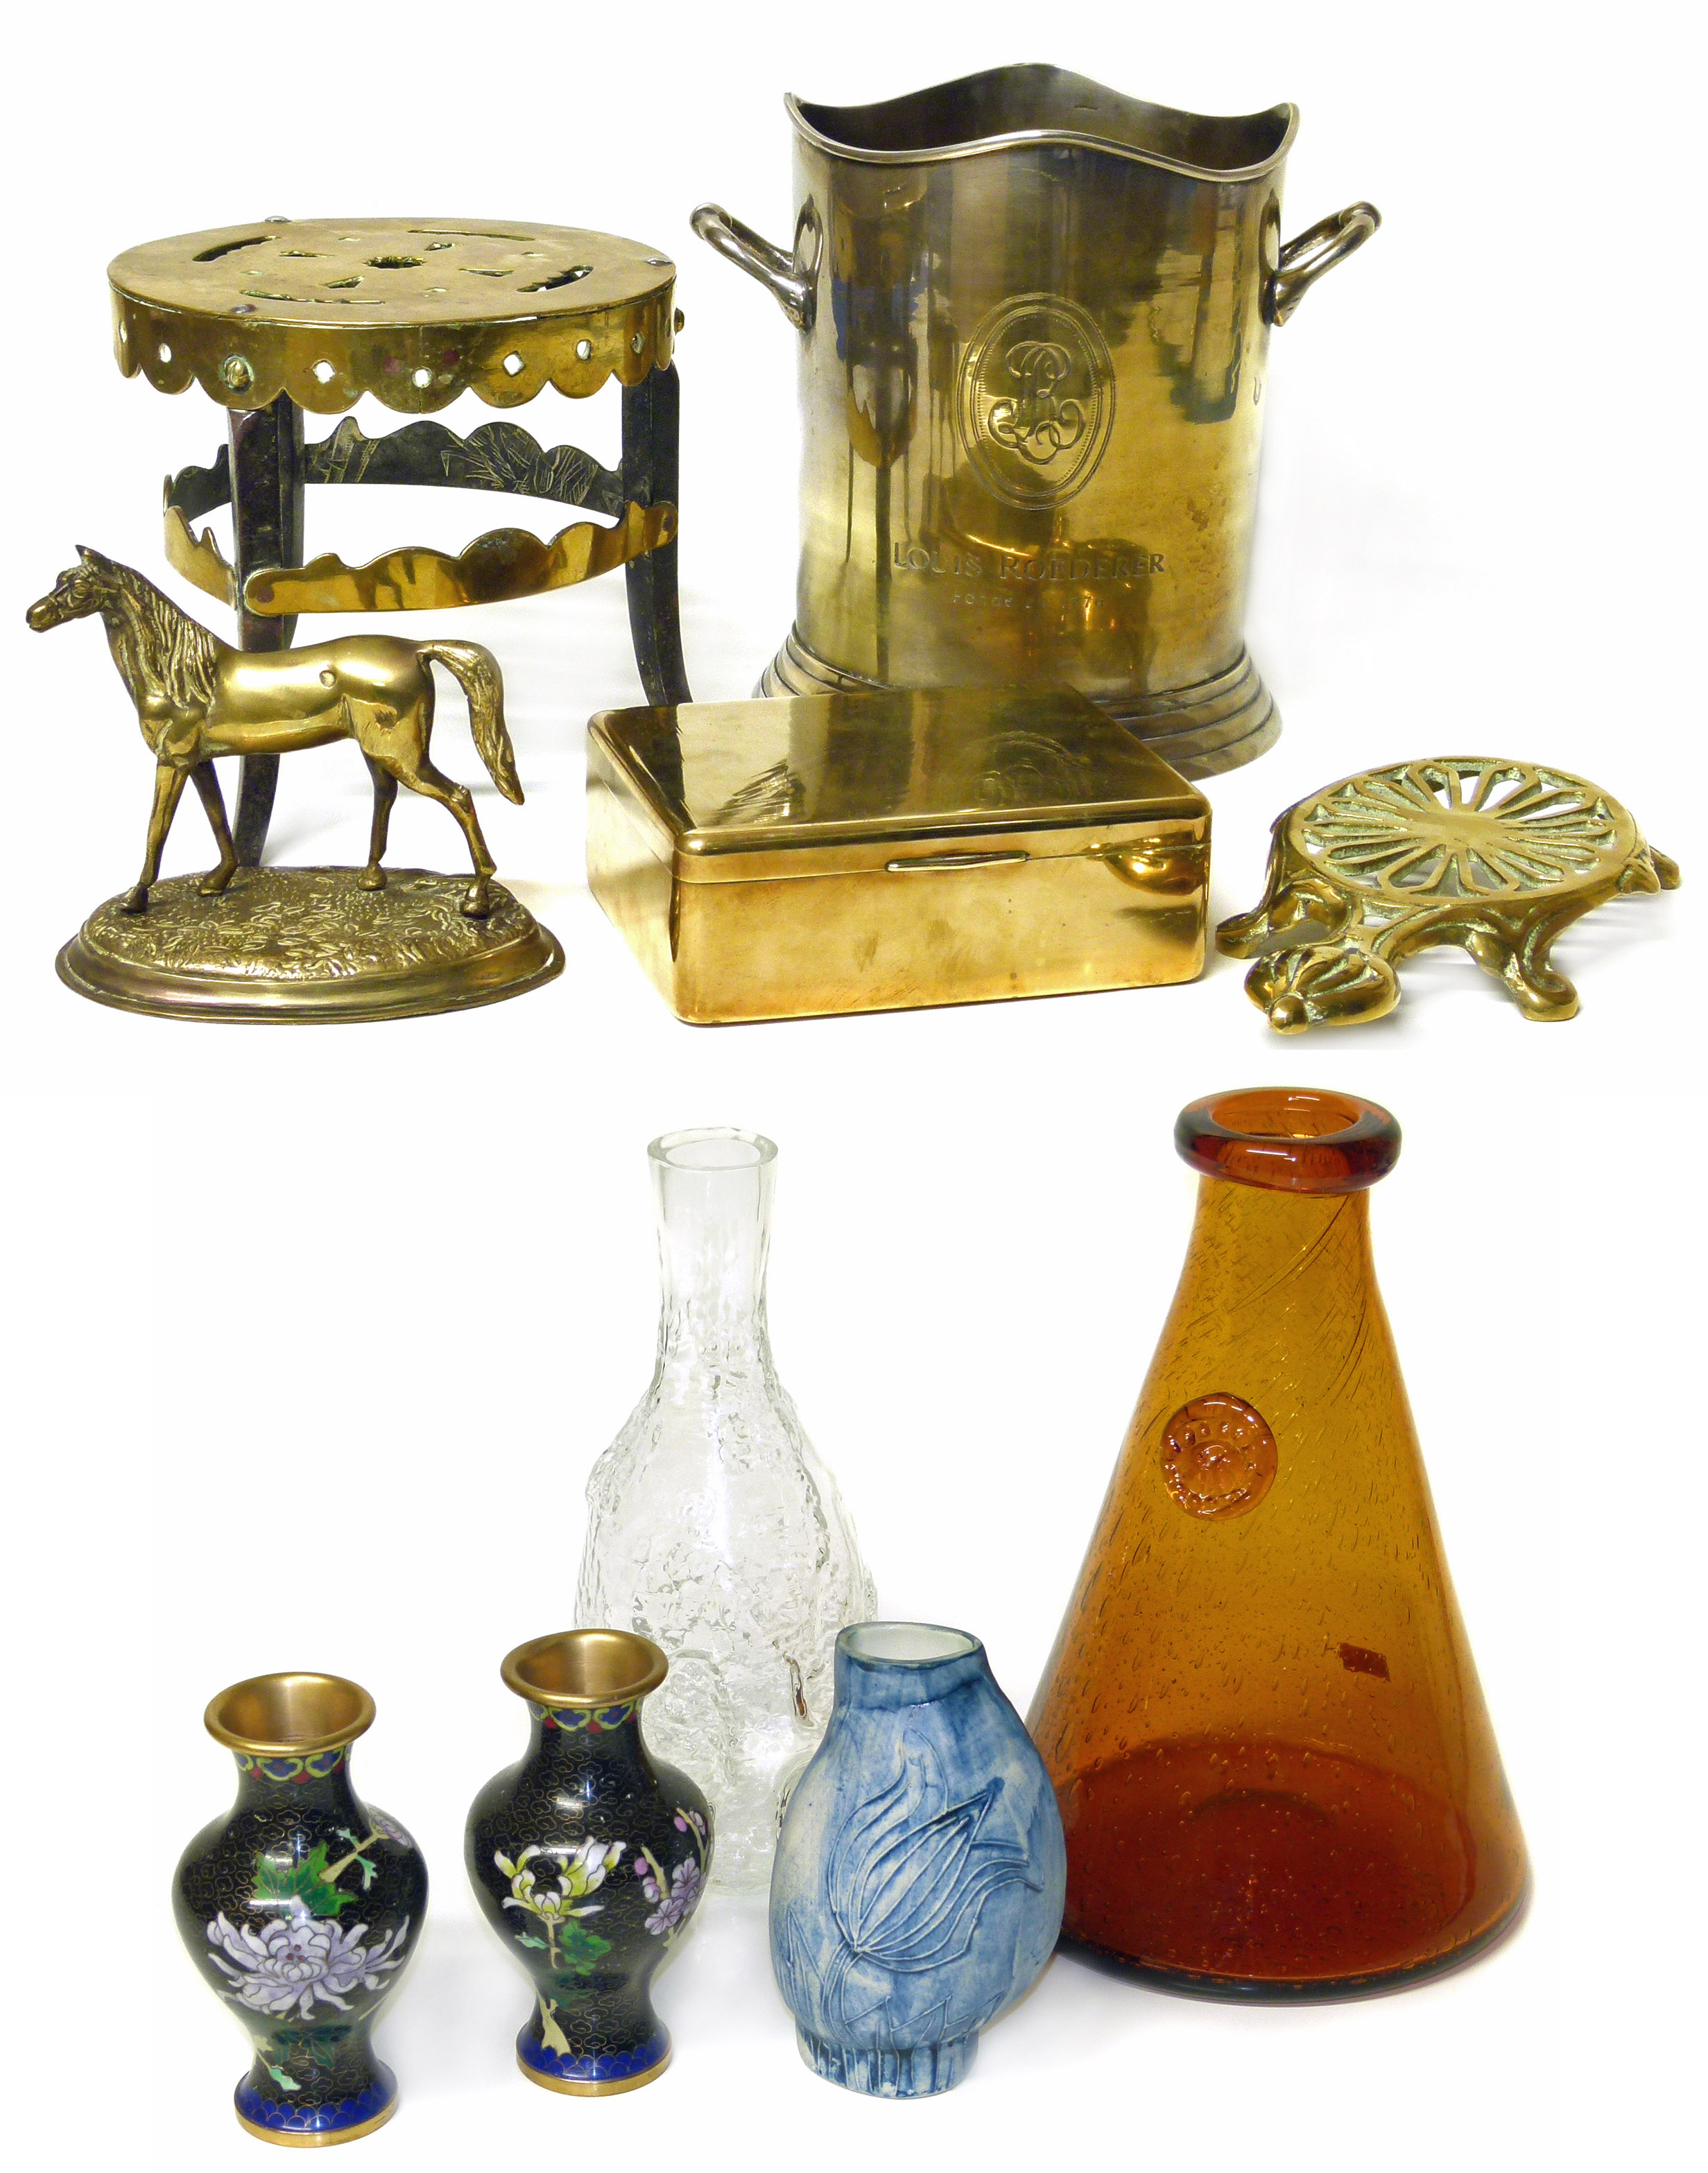 Lot 74 - A collection of brass and plated ware, also a Swedish glass decanter, two Cloisonne vases and the